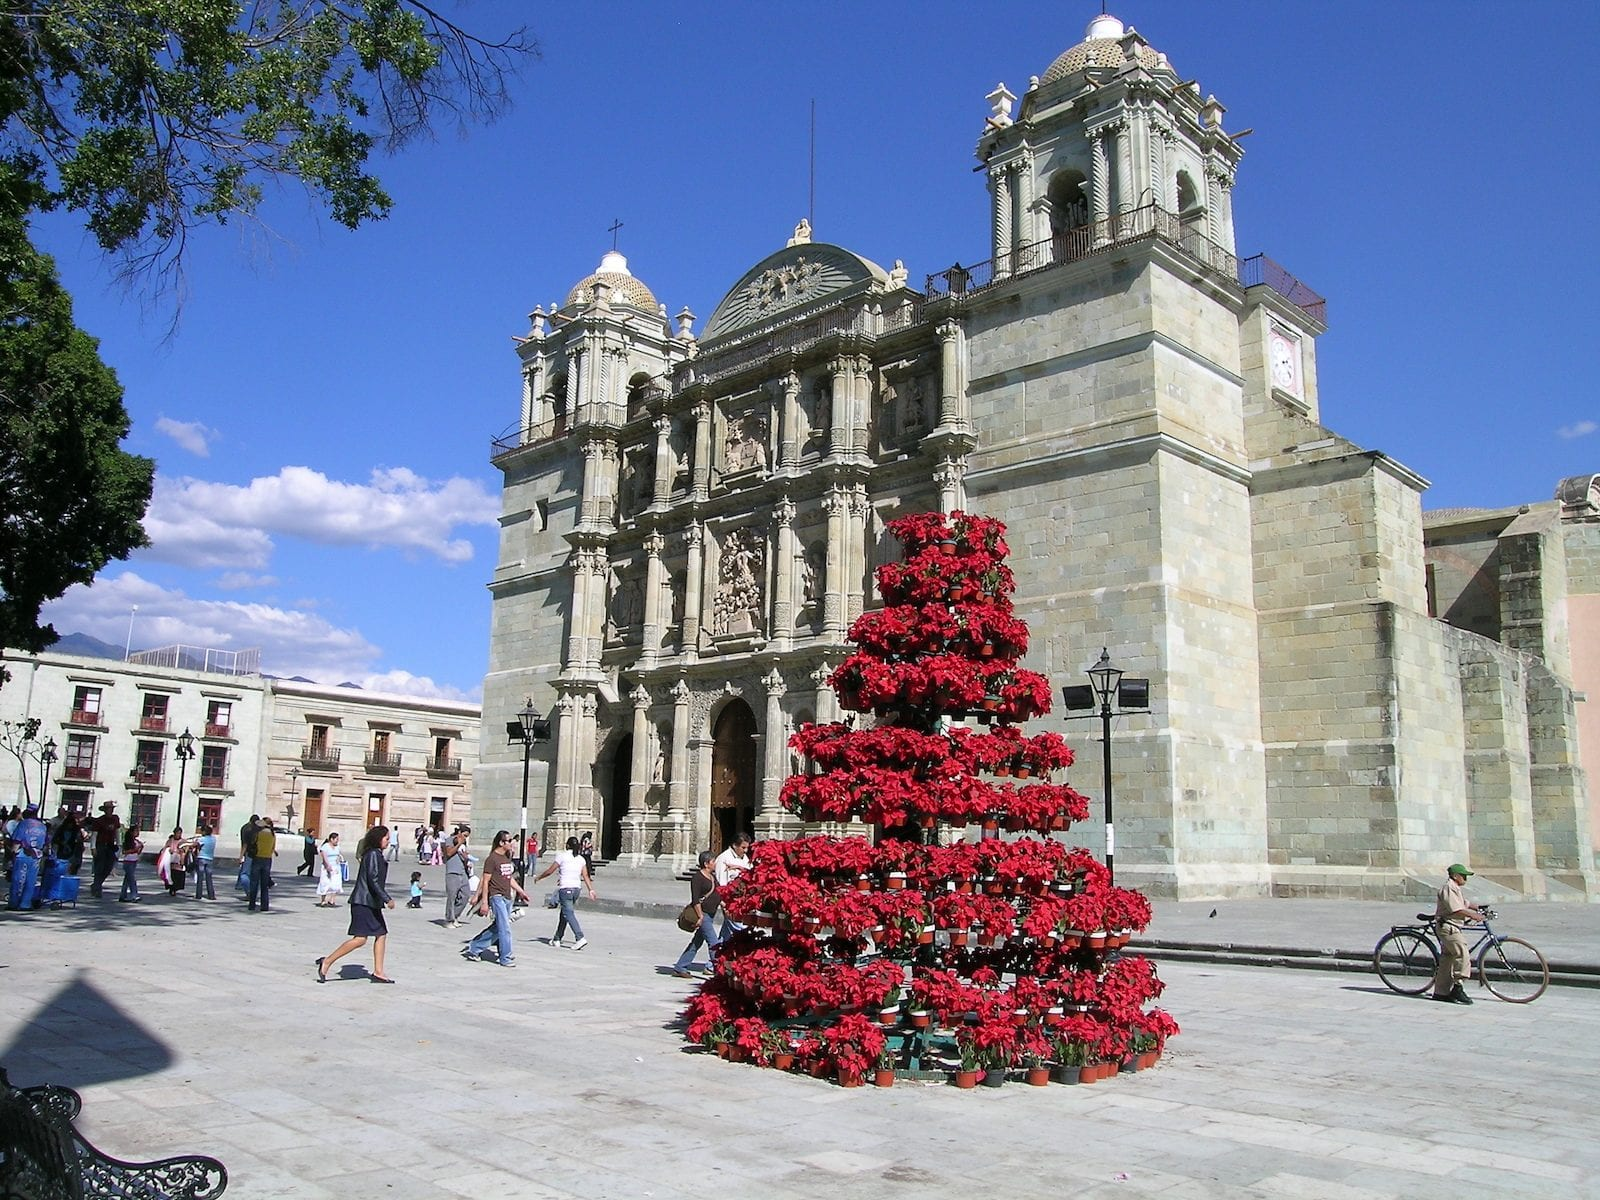 Poinsettia Tree and Catedral de Oaxaca, Mexico